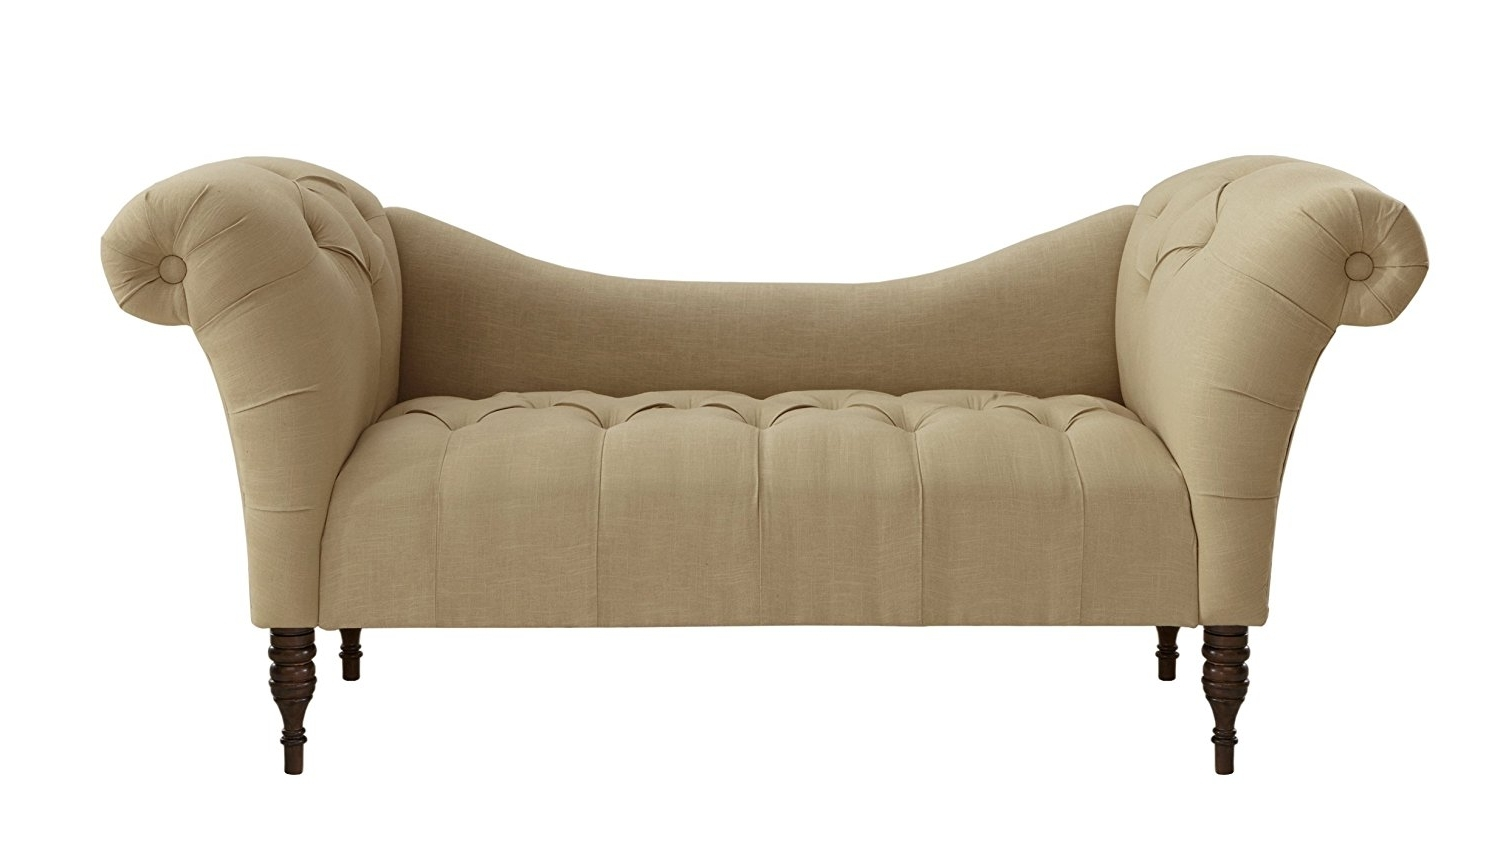 Chaise Benchs Pertaining To Trendy Amazon: Skyline Furniture Tufted Chaise Lounge In Linen (View 4 of 15)